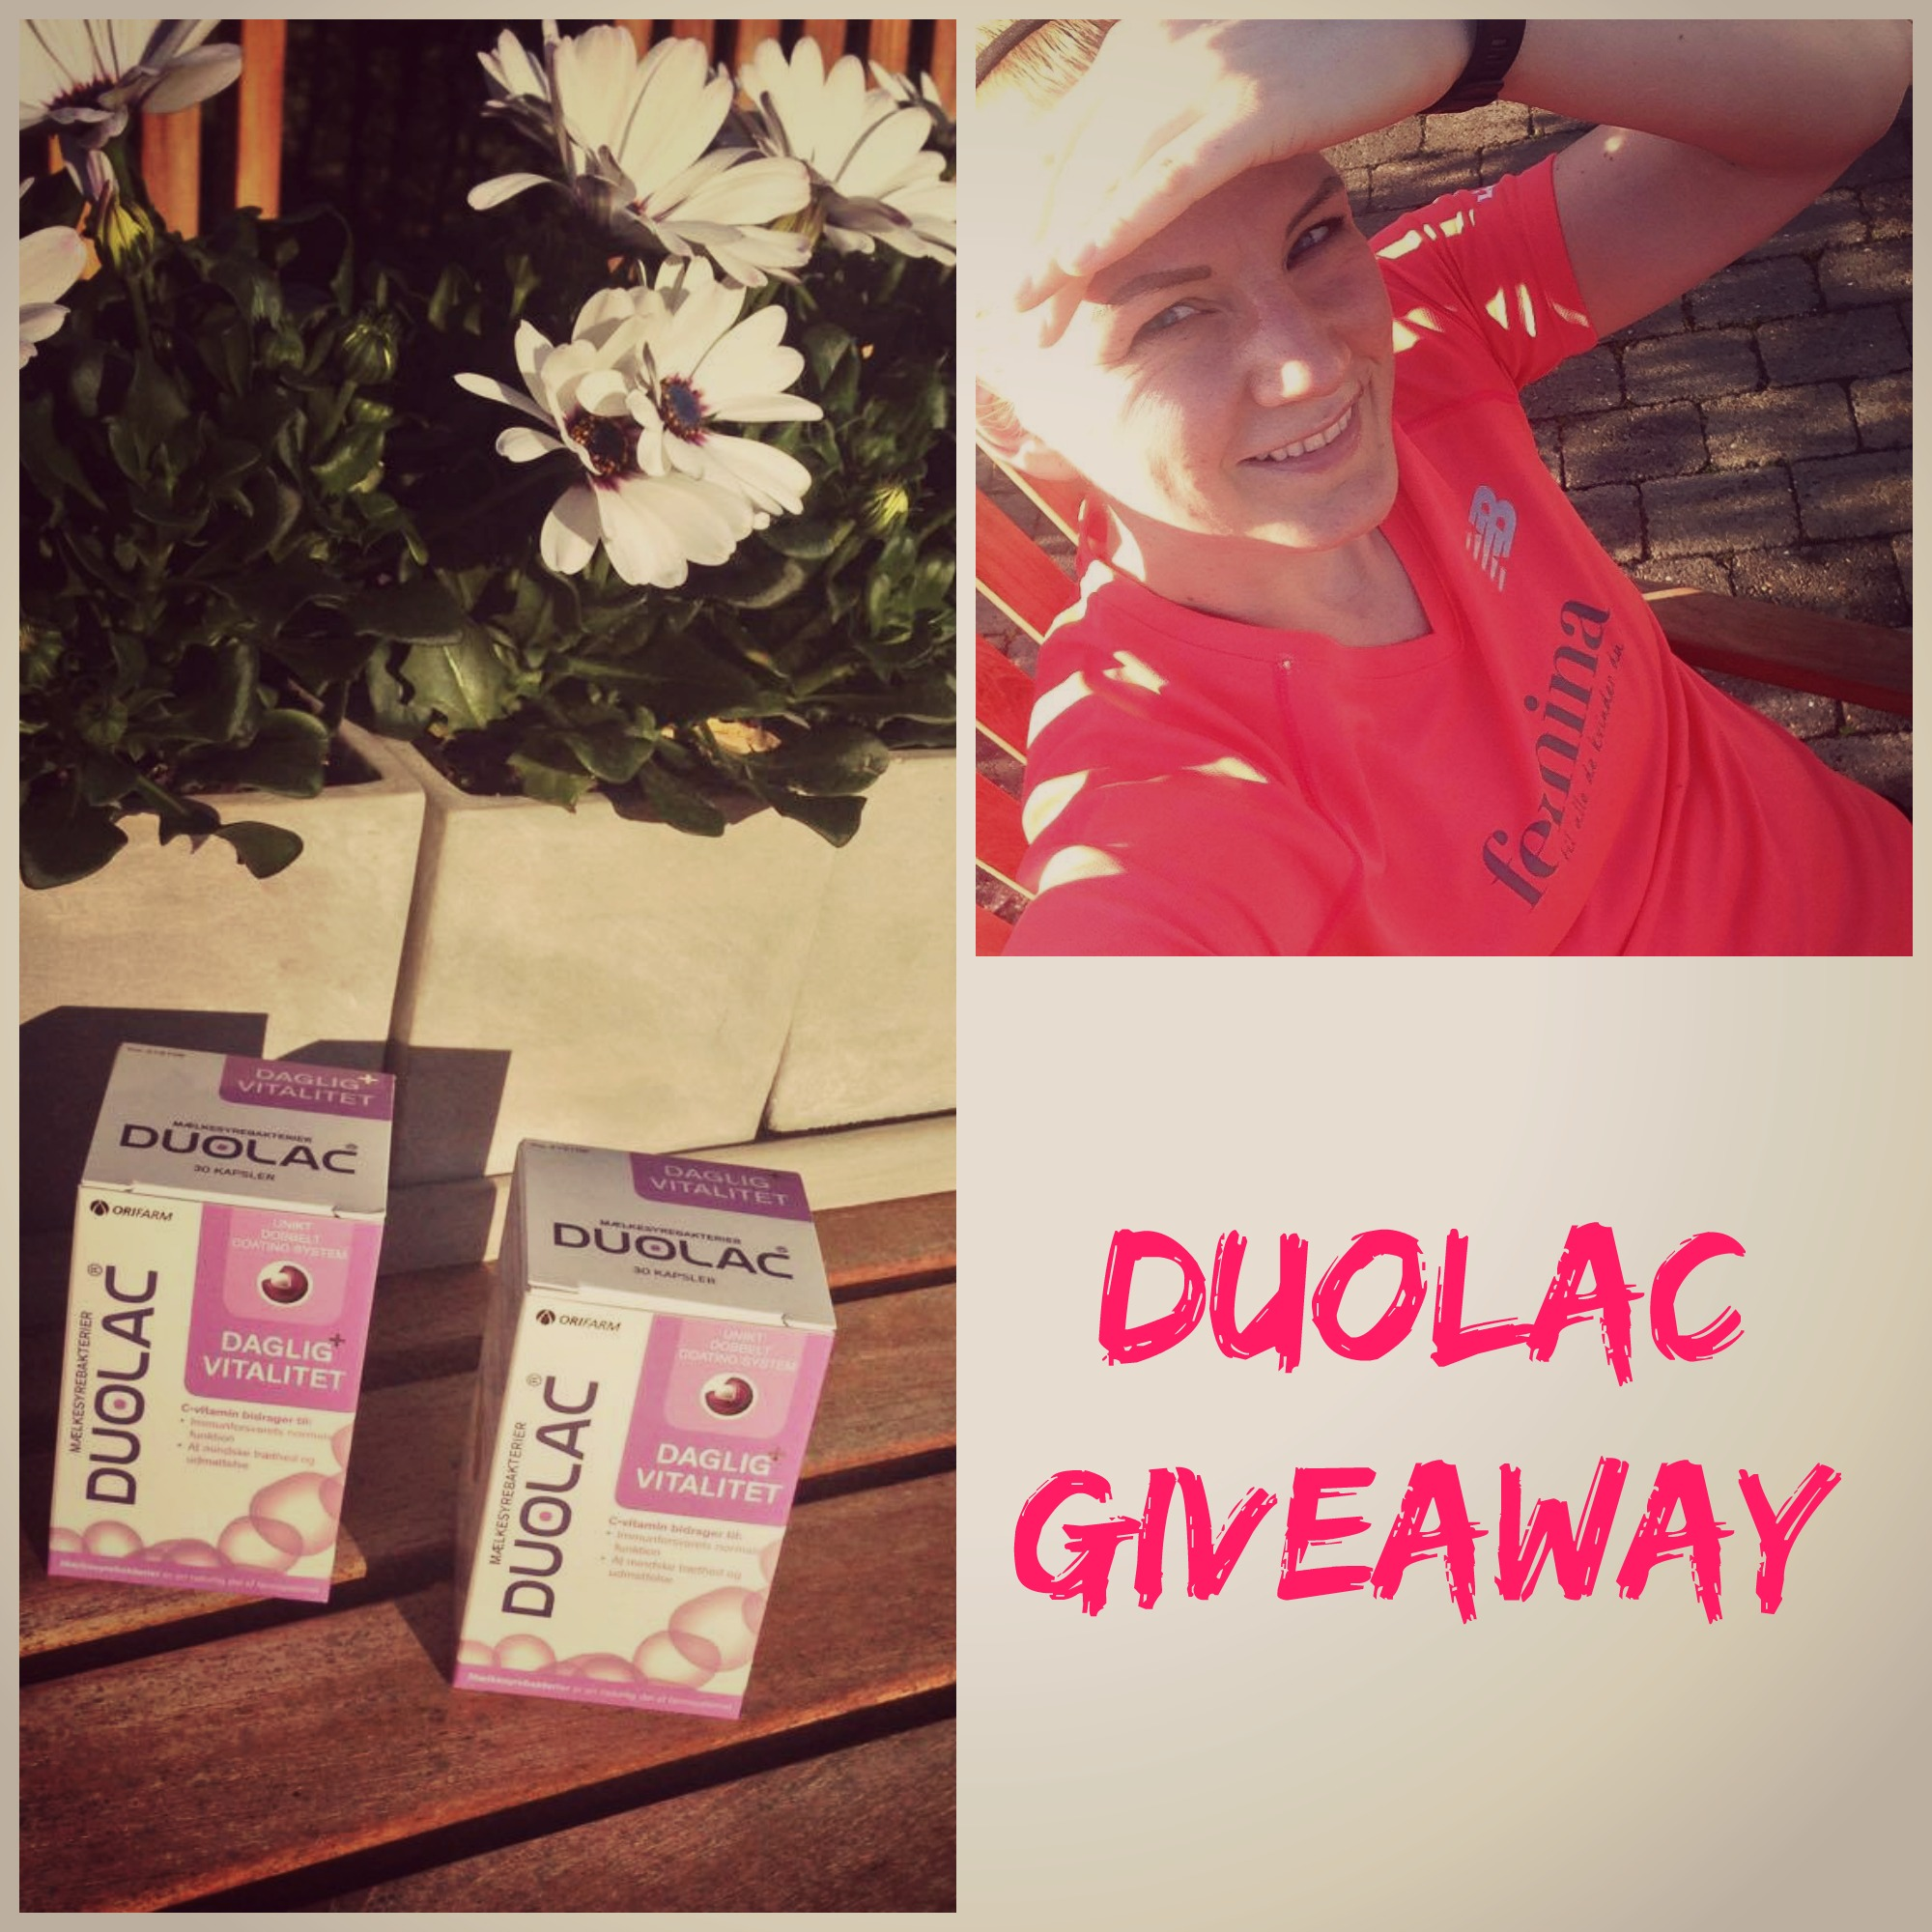 duolac giveaway